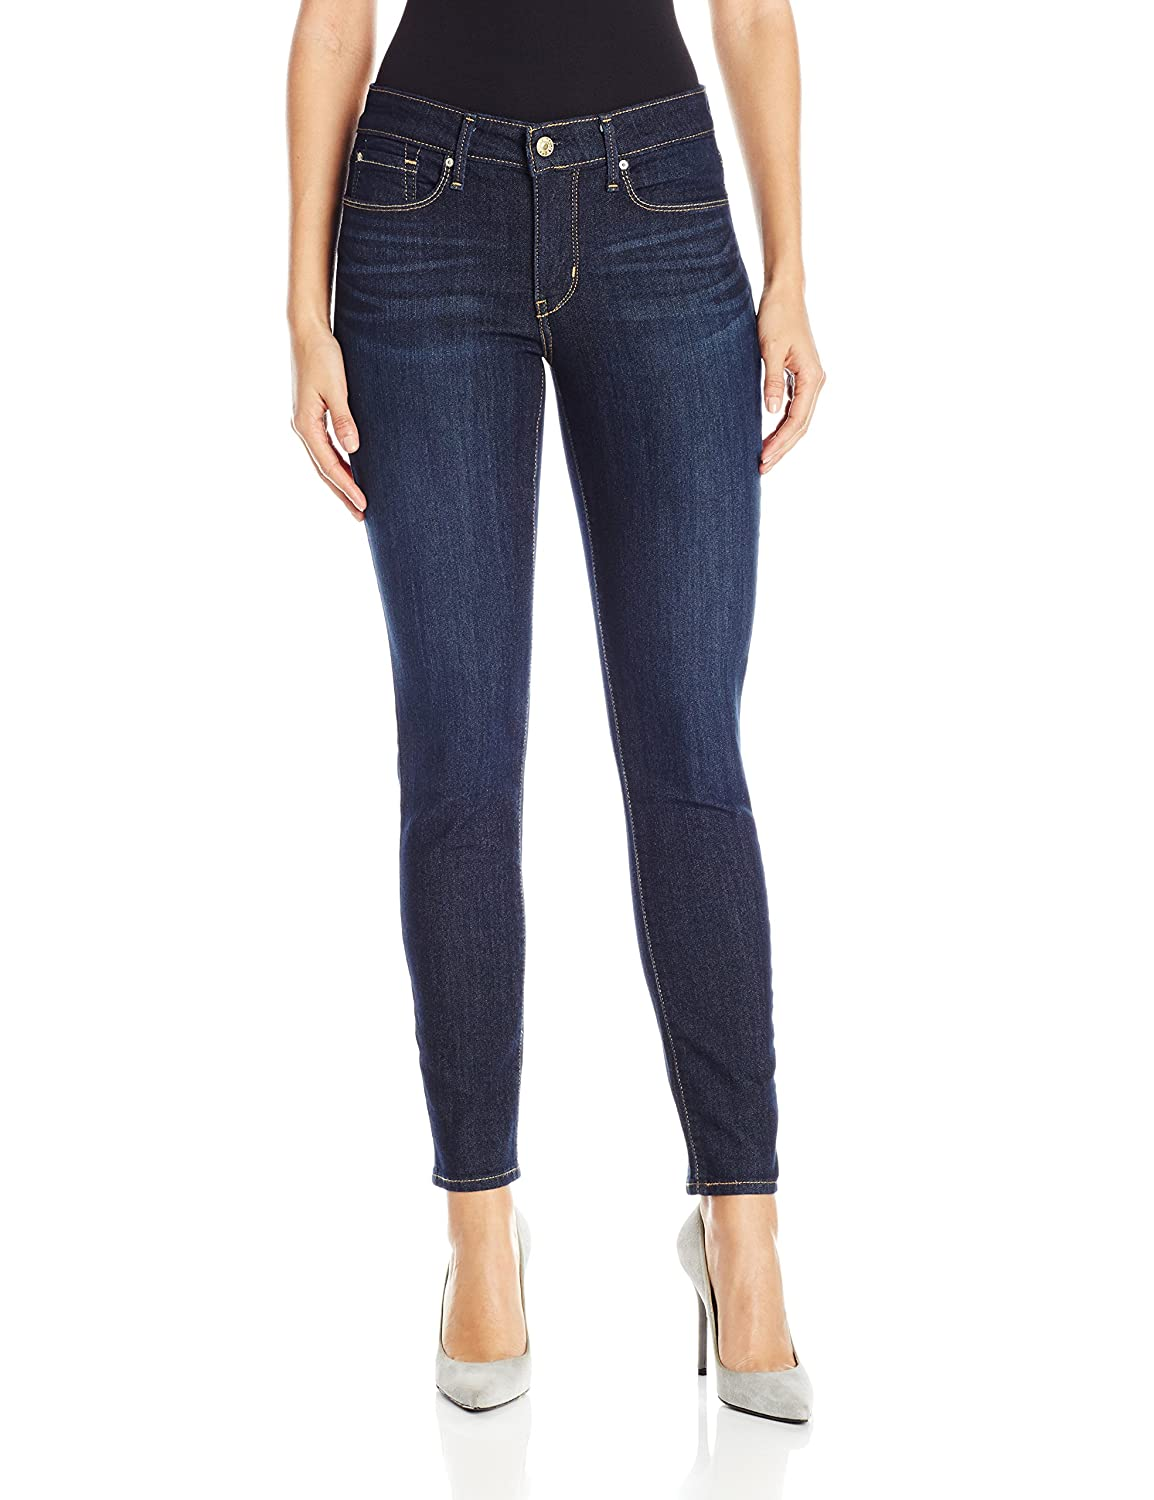 Signature by Levi Strauss & Co. Gold Label Women's Totally Shaping Skinny Jean 94451-0016